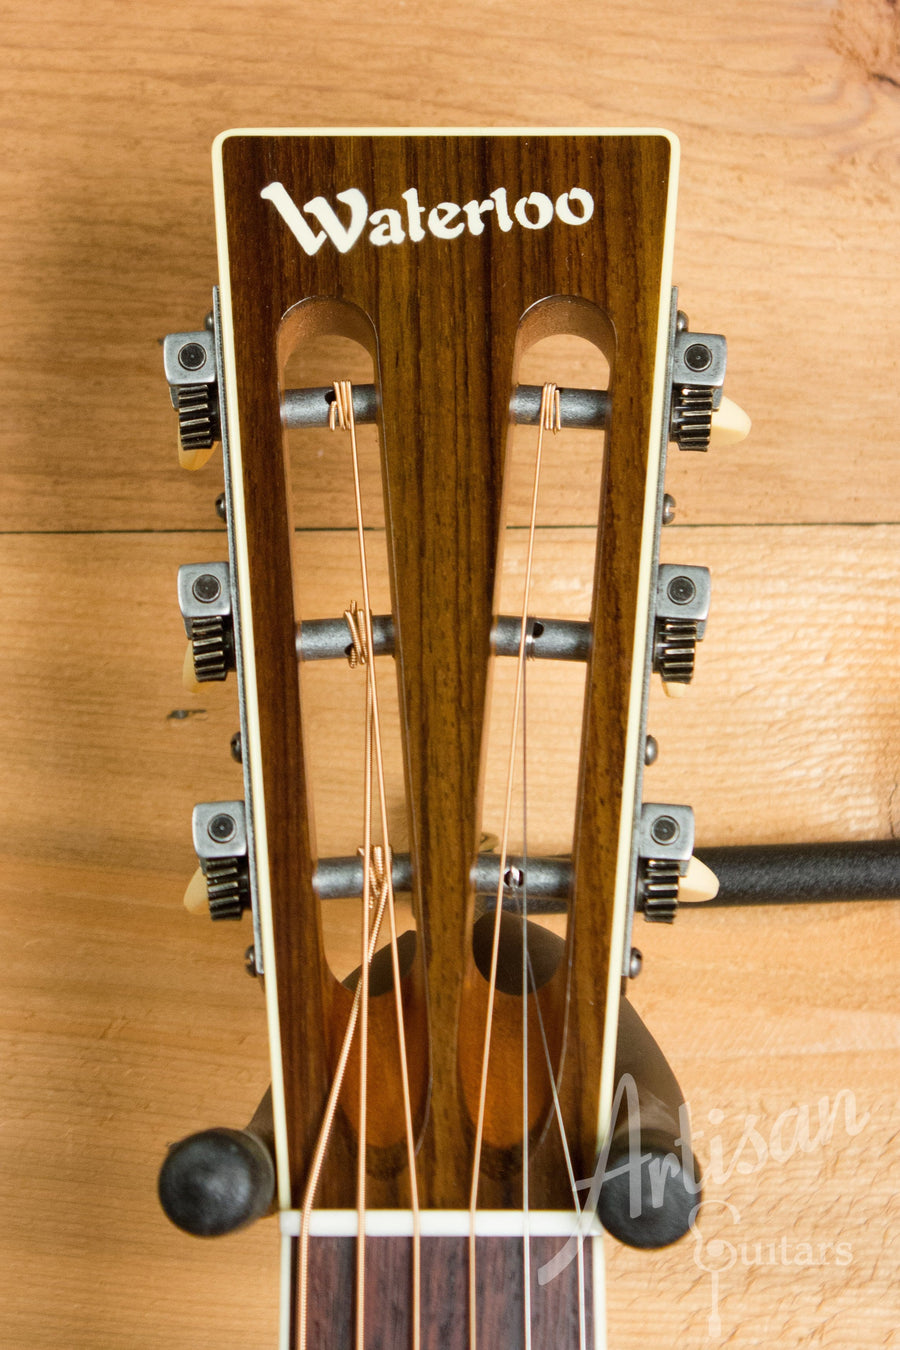 Waterloo WL-S DLX Ladder Braced Guitar Solid Spruce and Cherry ID-11212 - Artisan Guitars